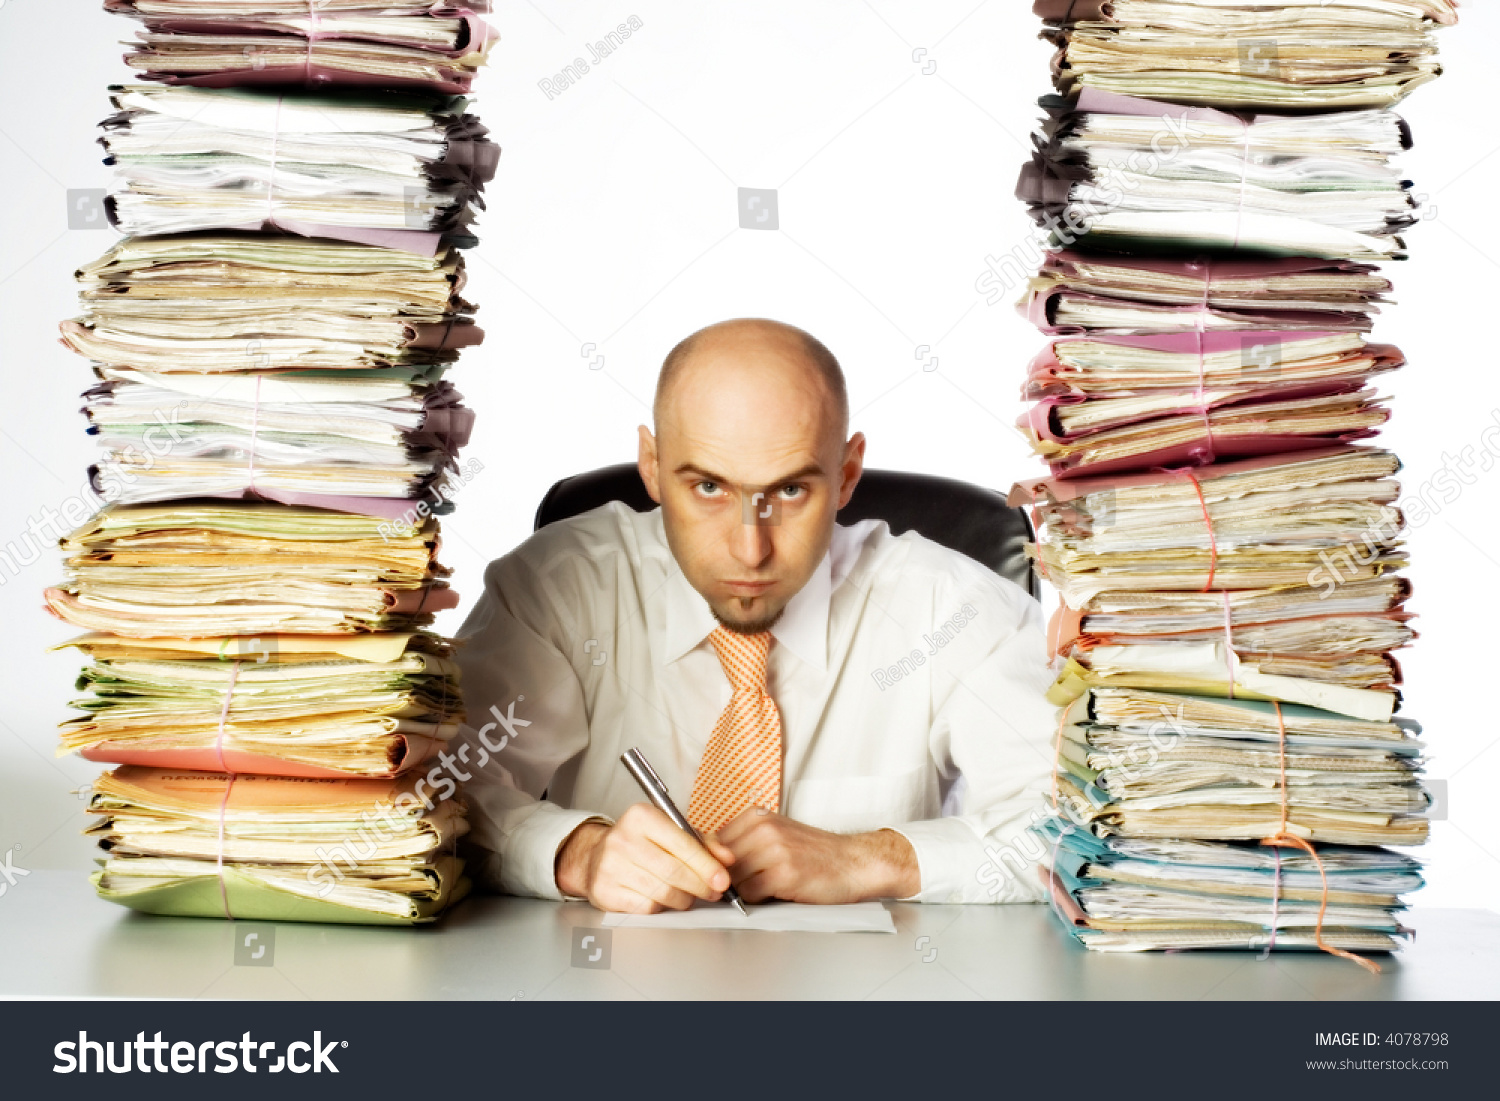 stern unpleasant administrative clerk glares through stock photo a stern and unpleasant administrative clerk glares through two huge stacks of business files clearly